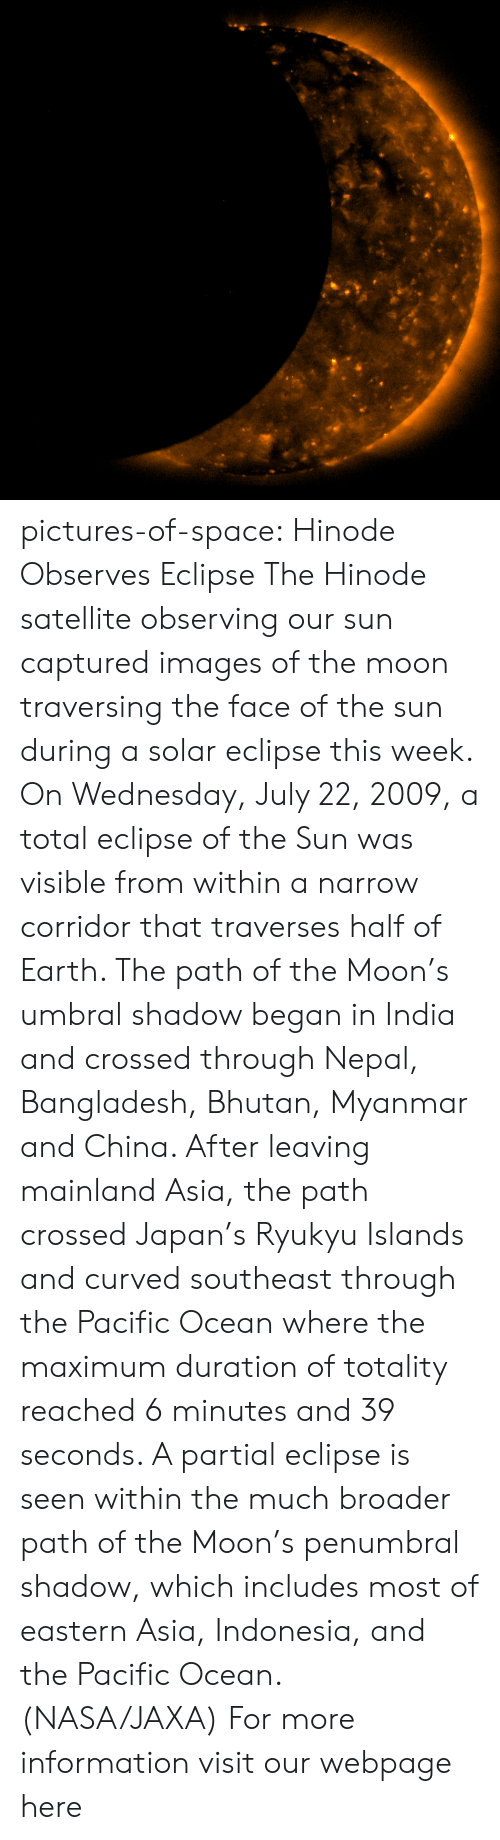 Bhutan: pictures-of-space:    Hinode Observes Eclipse The Hinode satellite observing our sun captured images of the moon traversing the face of the sun during a solar eclipse this week. On Wednesday, July 22, 2009, a total eclipse of the Sun was visible from within a narrow corridor that traverses half of Earth. The path of the Moon's umbral shadow began in India and crossed through Nepal, Bangladesh, Bhutan, Myanmar and China. After leaving mainland Asia, the path crossed Japan's Ryukyu Islands and curved southeast through the Pacific Ocean where the maximum duration of totality reached 6 minutes and 39 seconds. A partial eclipse is seen within the much broader path of the Moon's penumbral shadow, which includes most of eastern Asia, Indonesia, and the Pacific Ocean. (NASA/JAXA)   For more information visit our webpage here